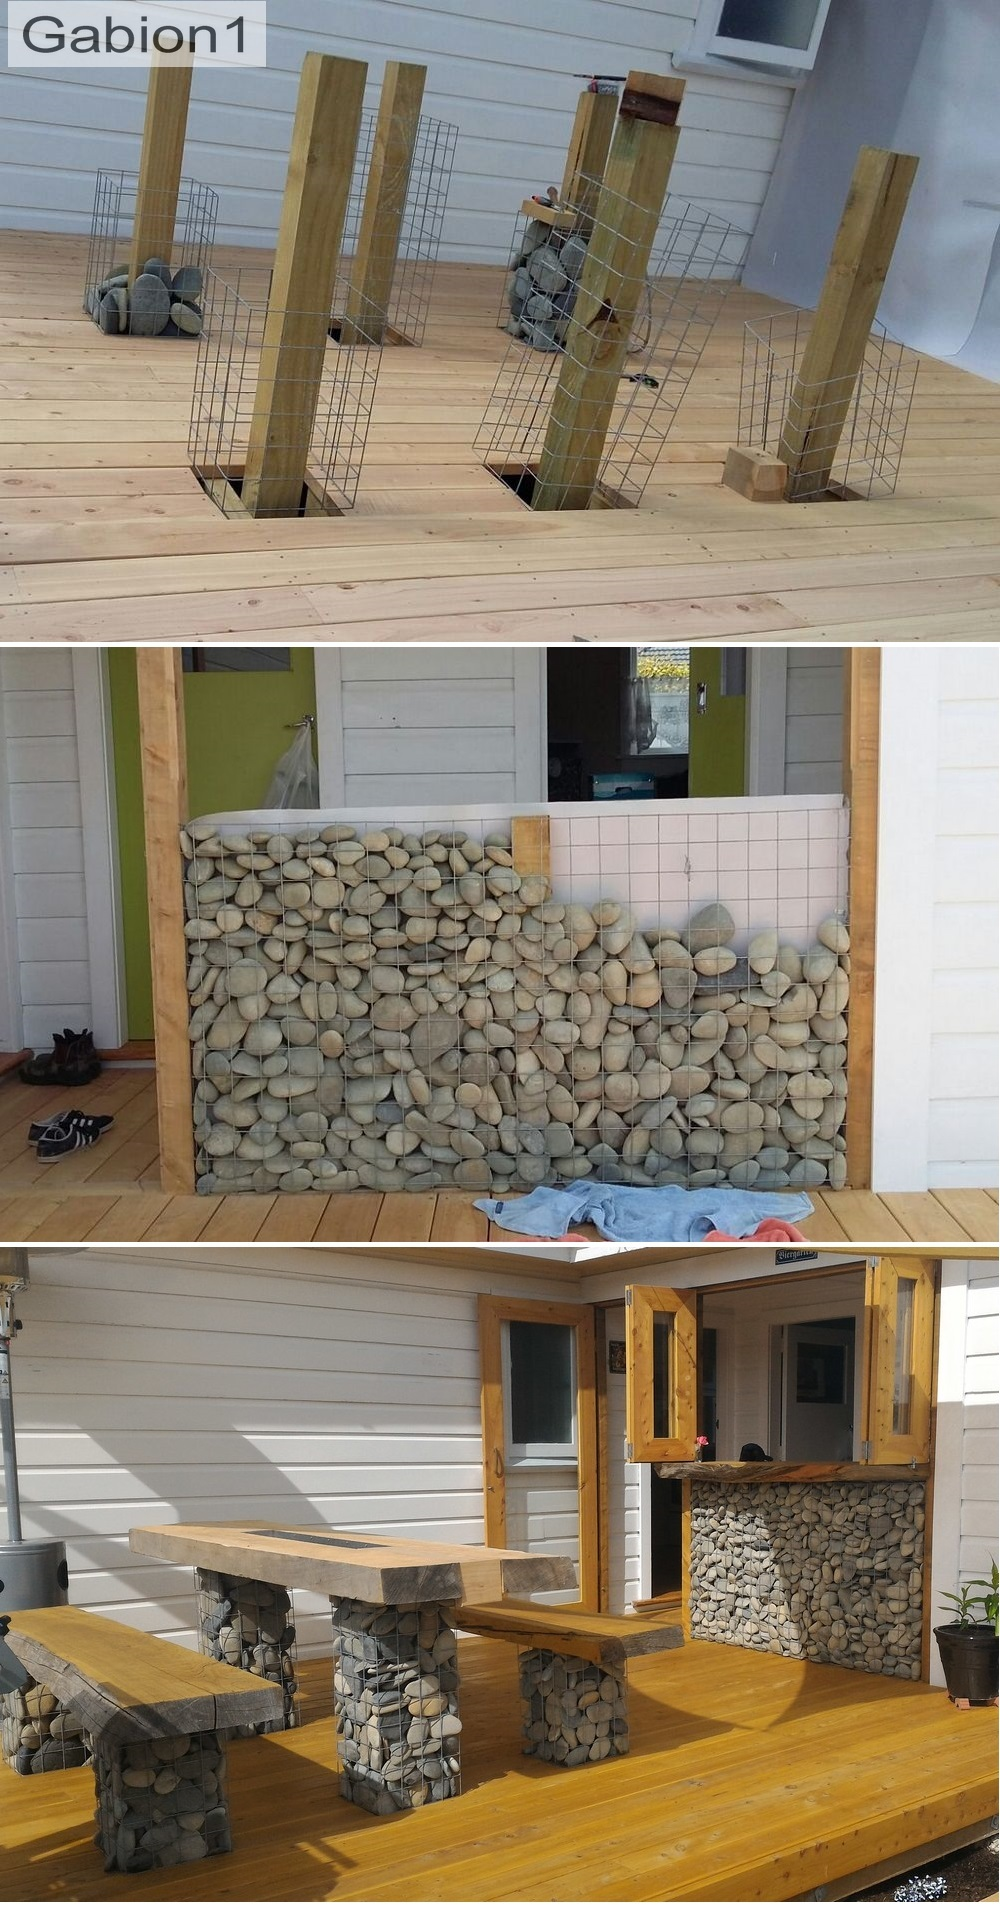 gabion-bar-constuction